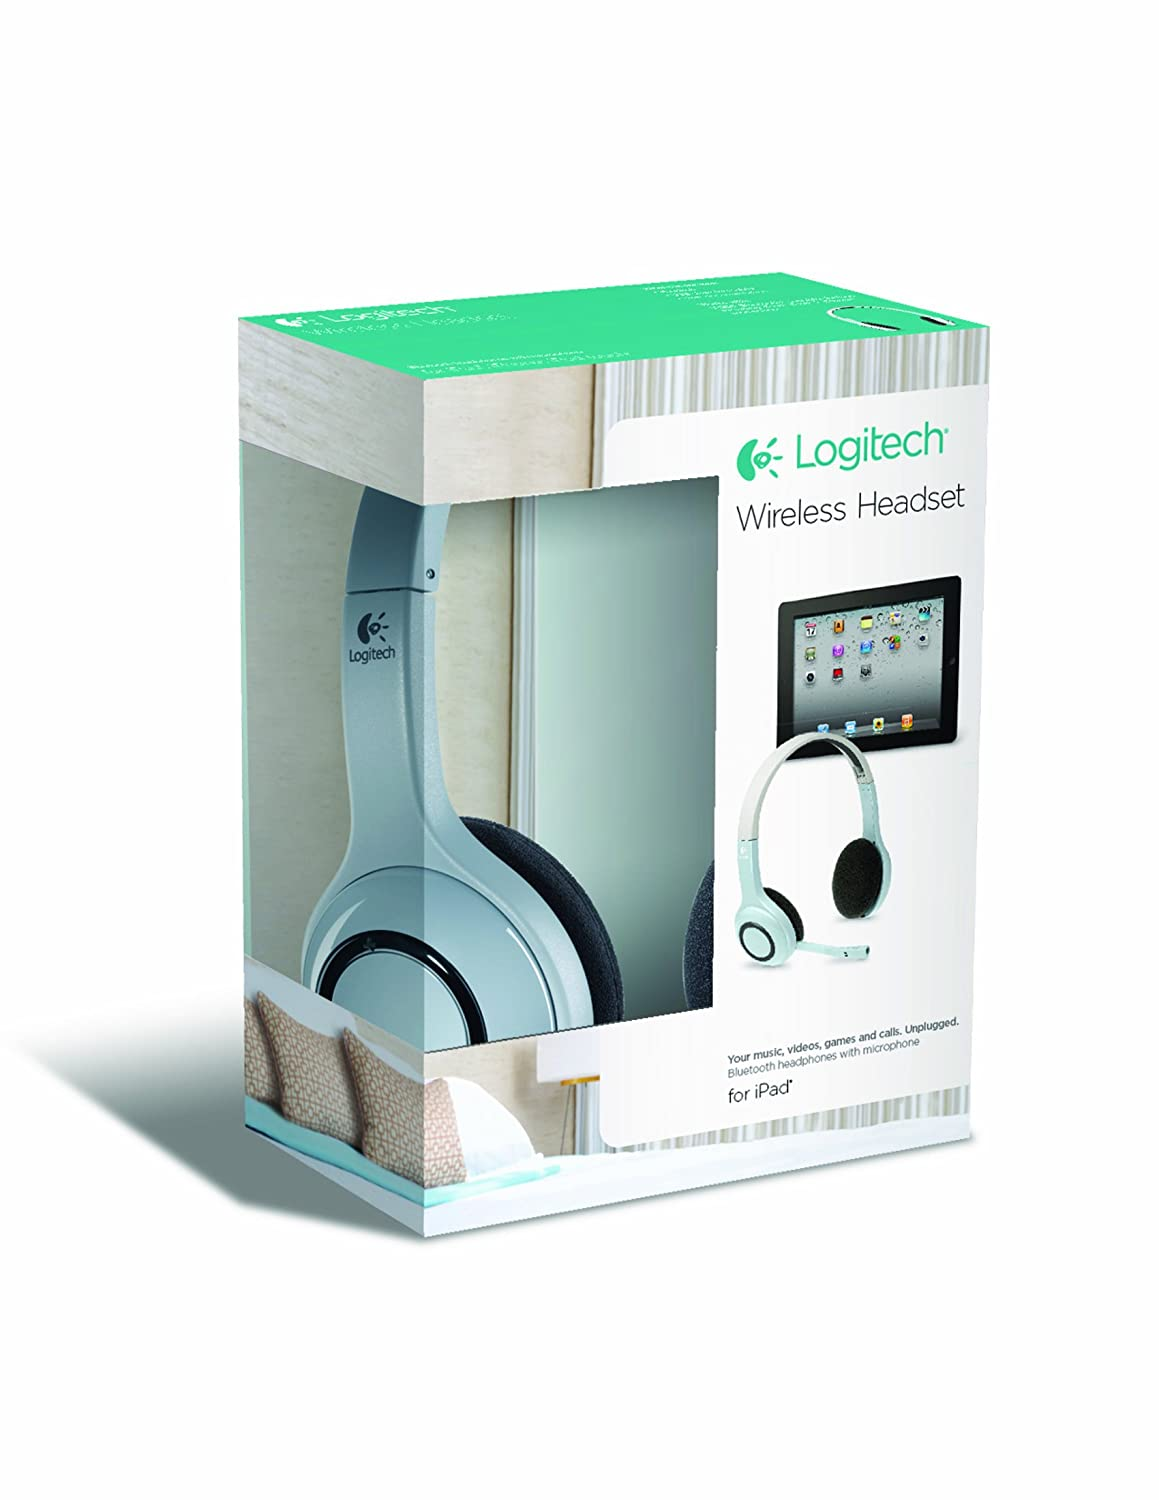 Amazon.com: Logitech Wireless Headset for iPad, iPhone and iPod ...